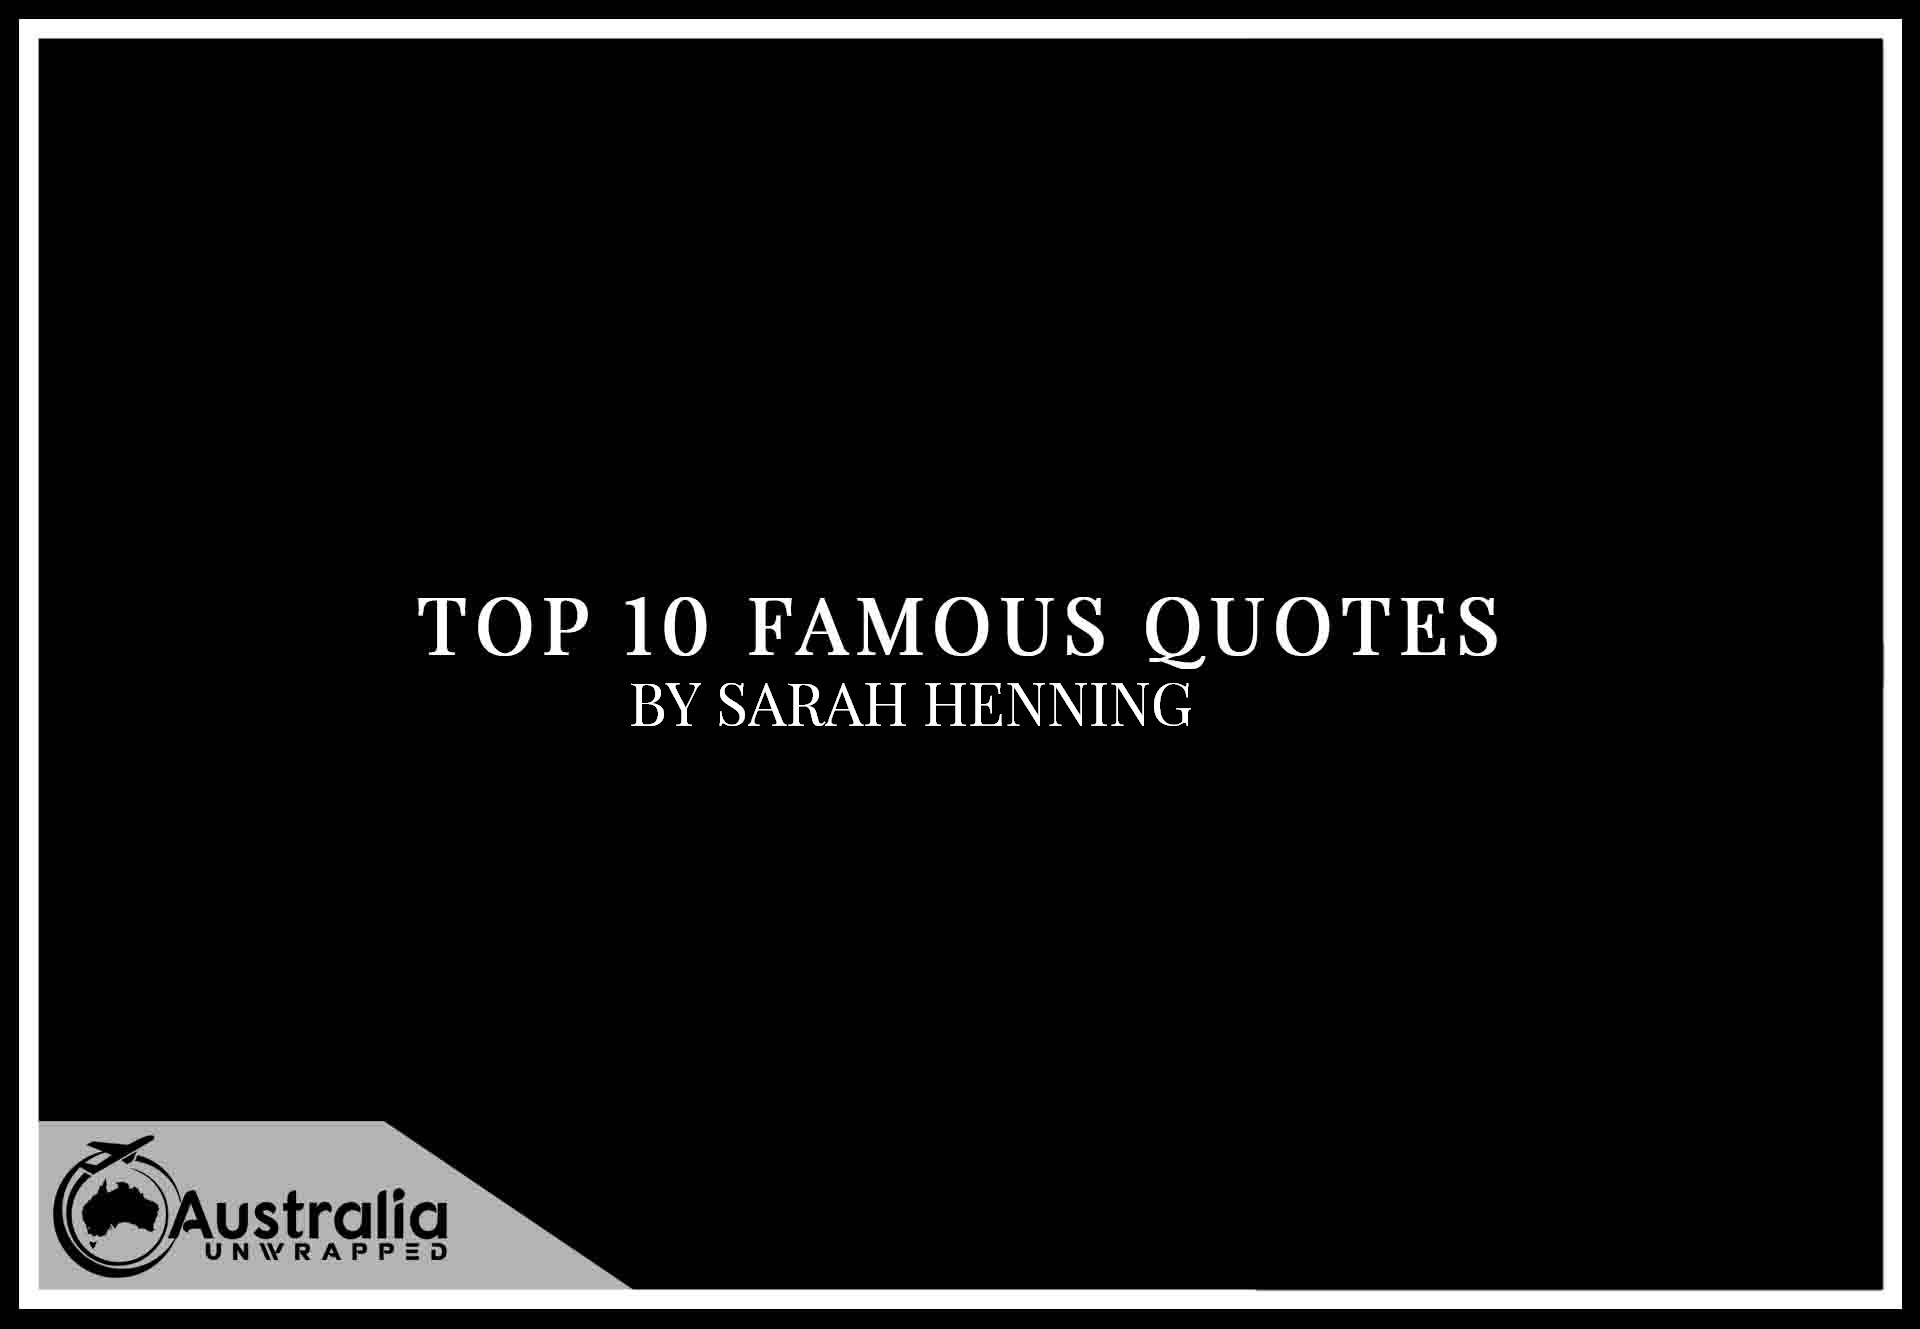 Top 10 Famous Quotes by Author Sarah Henning